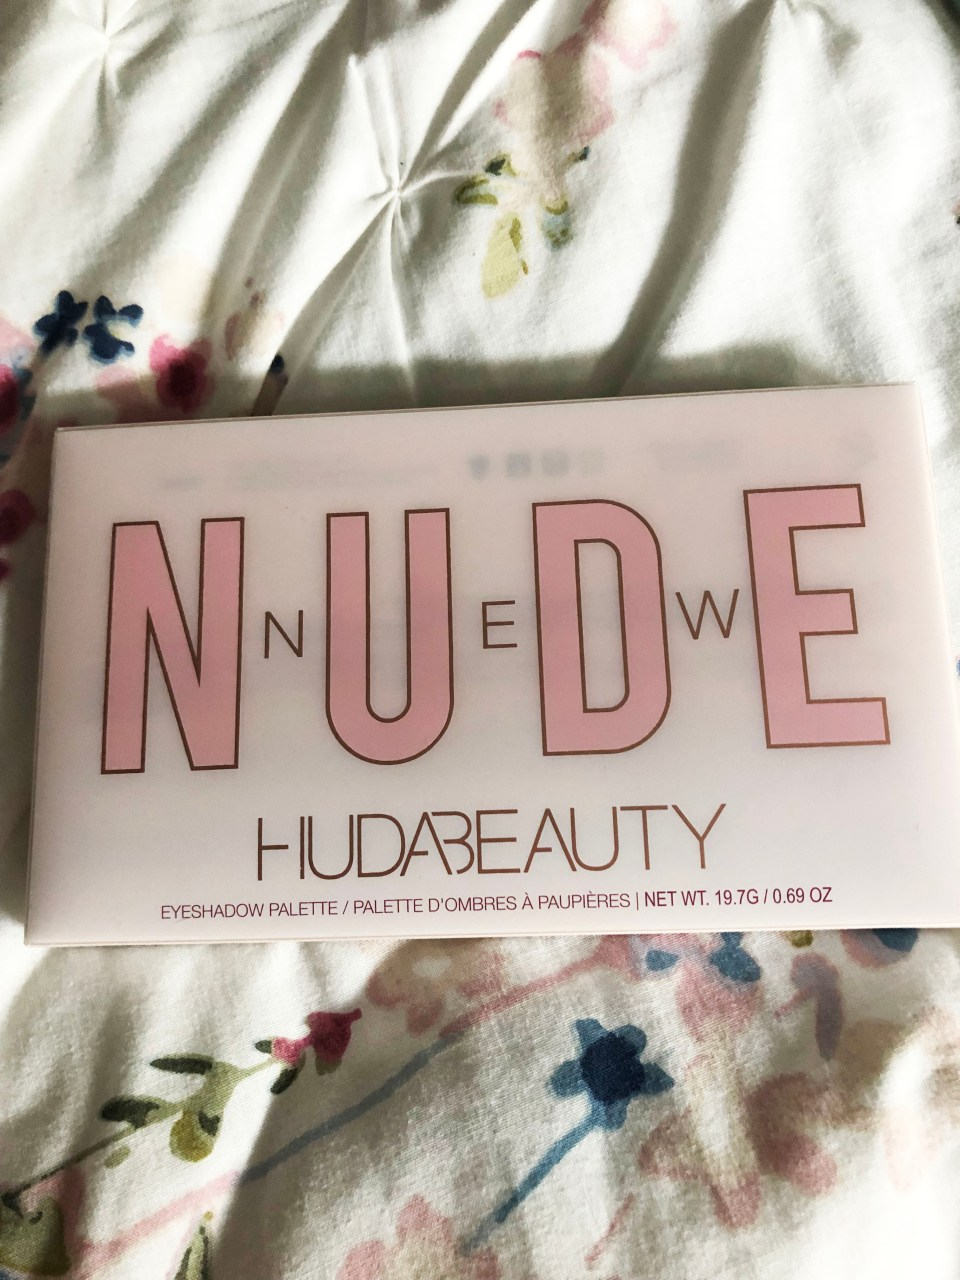 Huda Beauty - New Nude